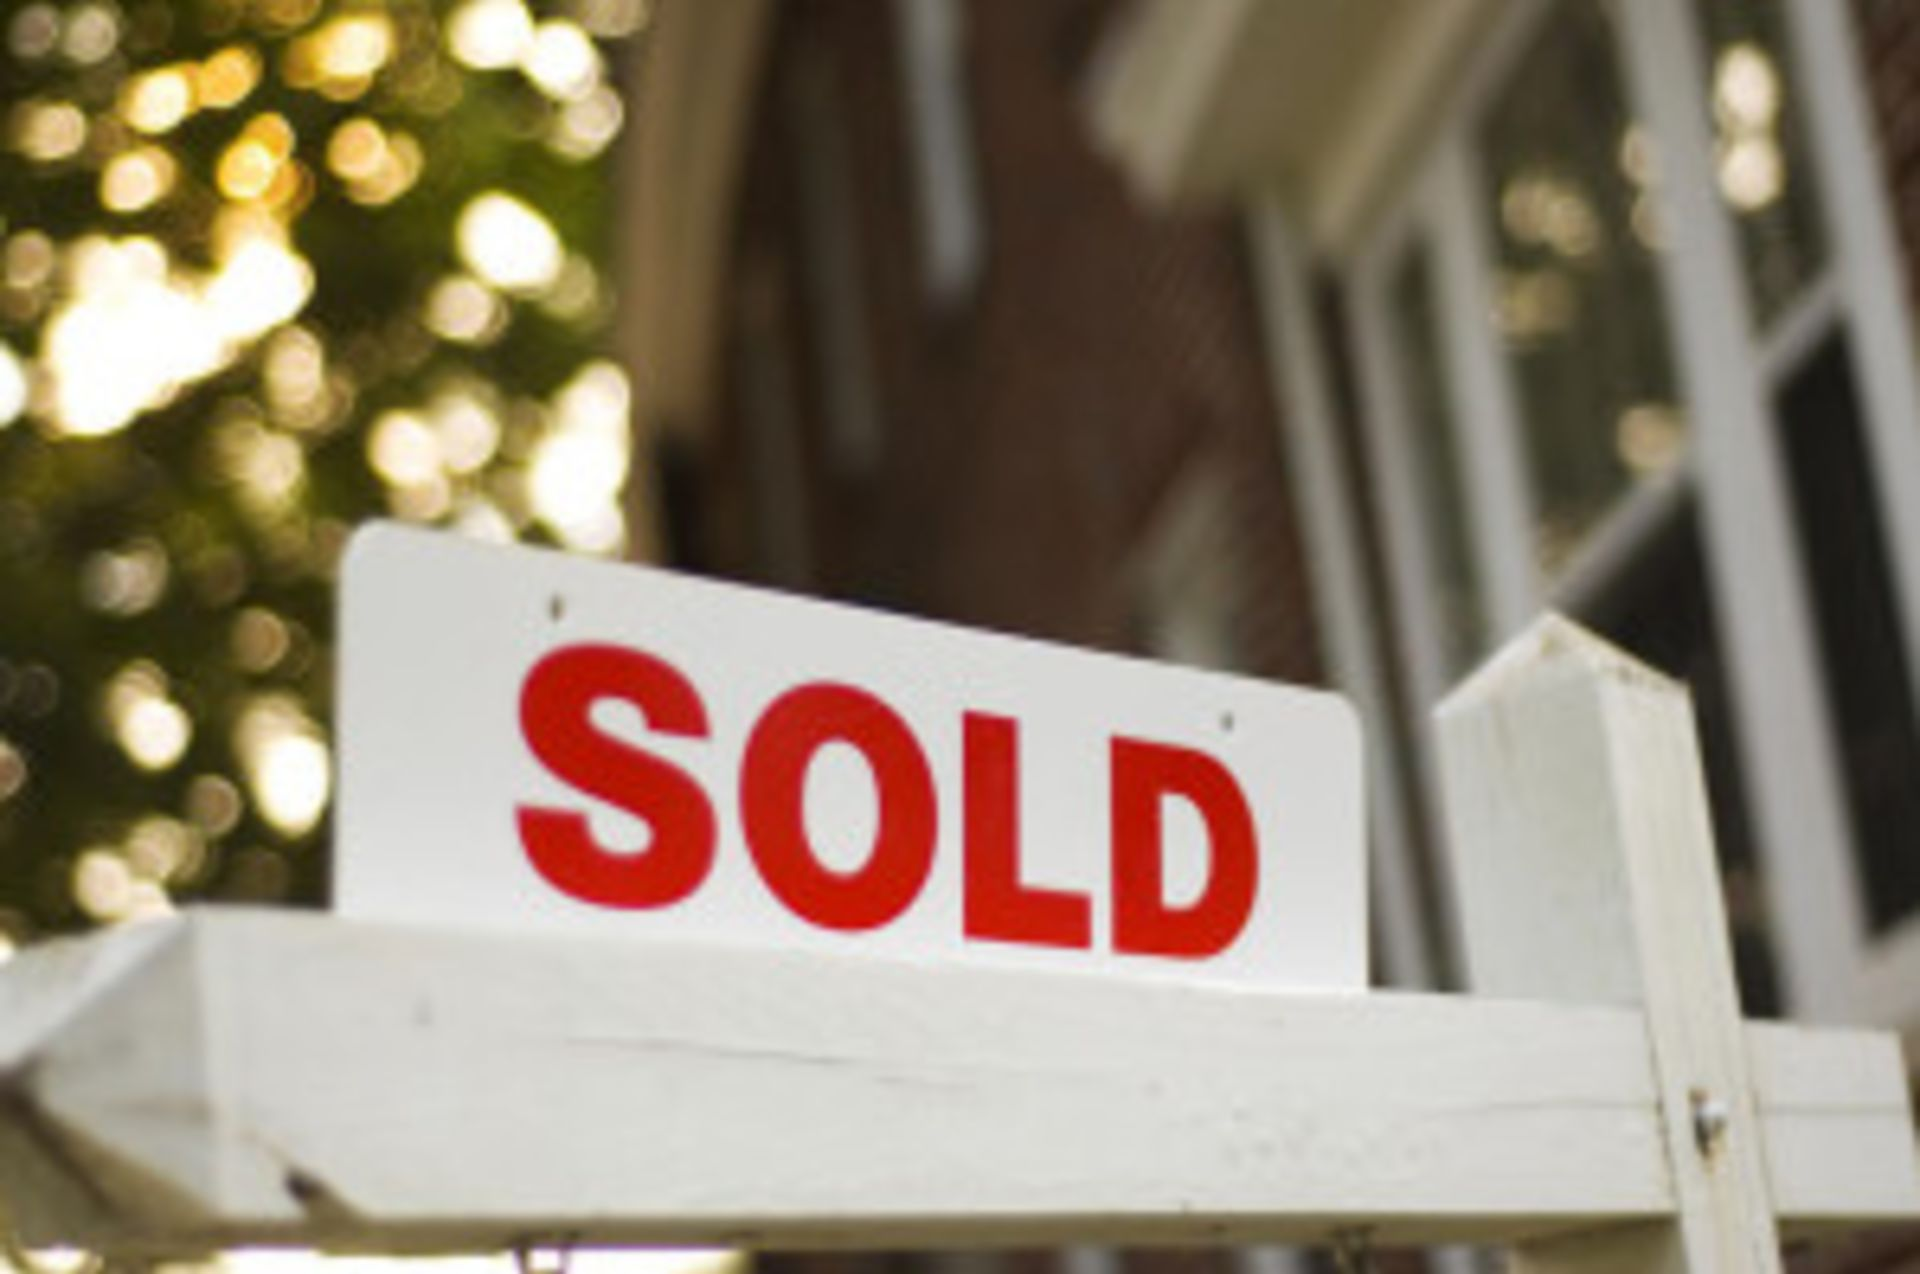 Market Update: Thinking of buying a house? Be ready, be knowledgeable, and be serious!